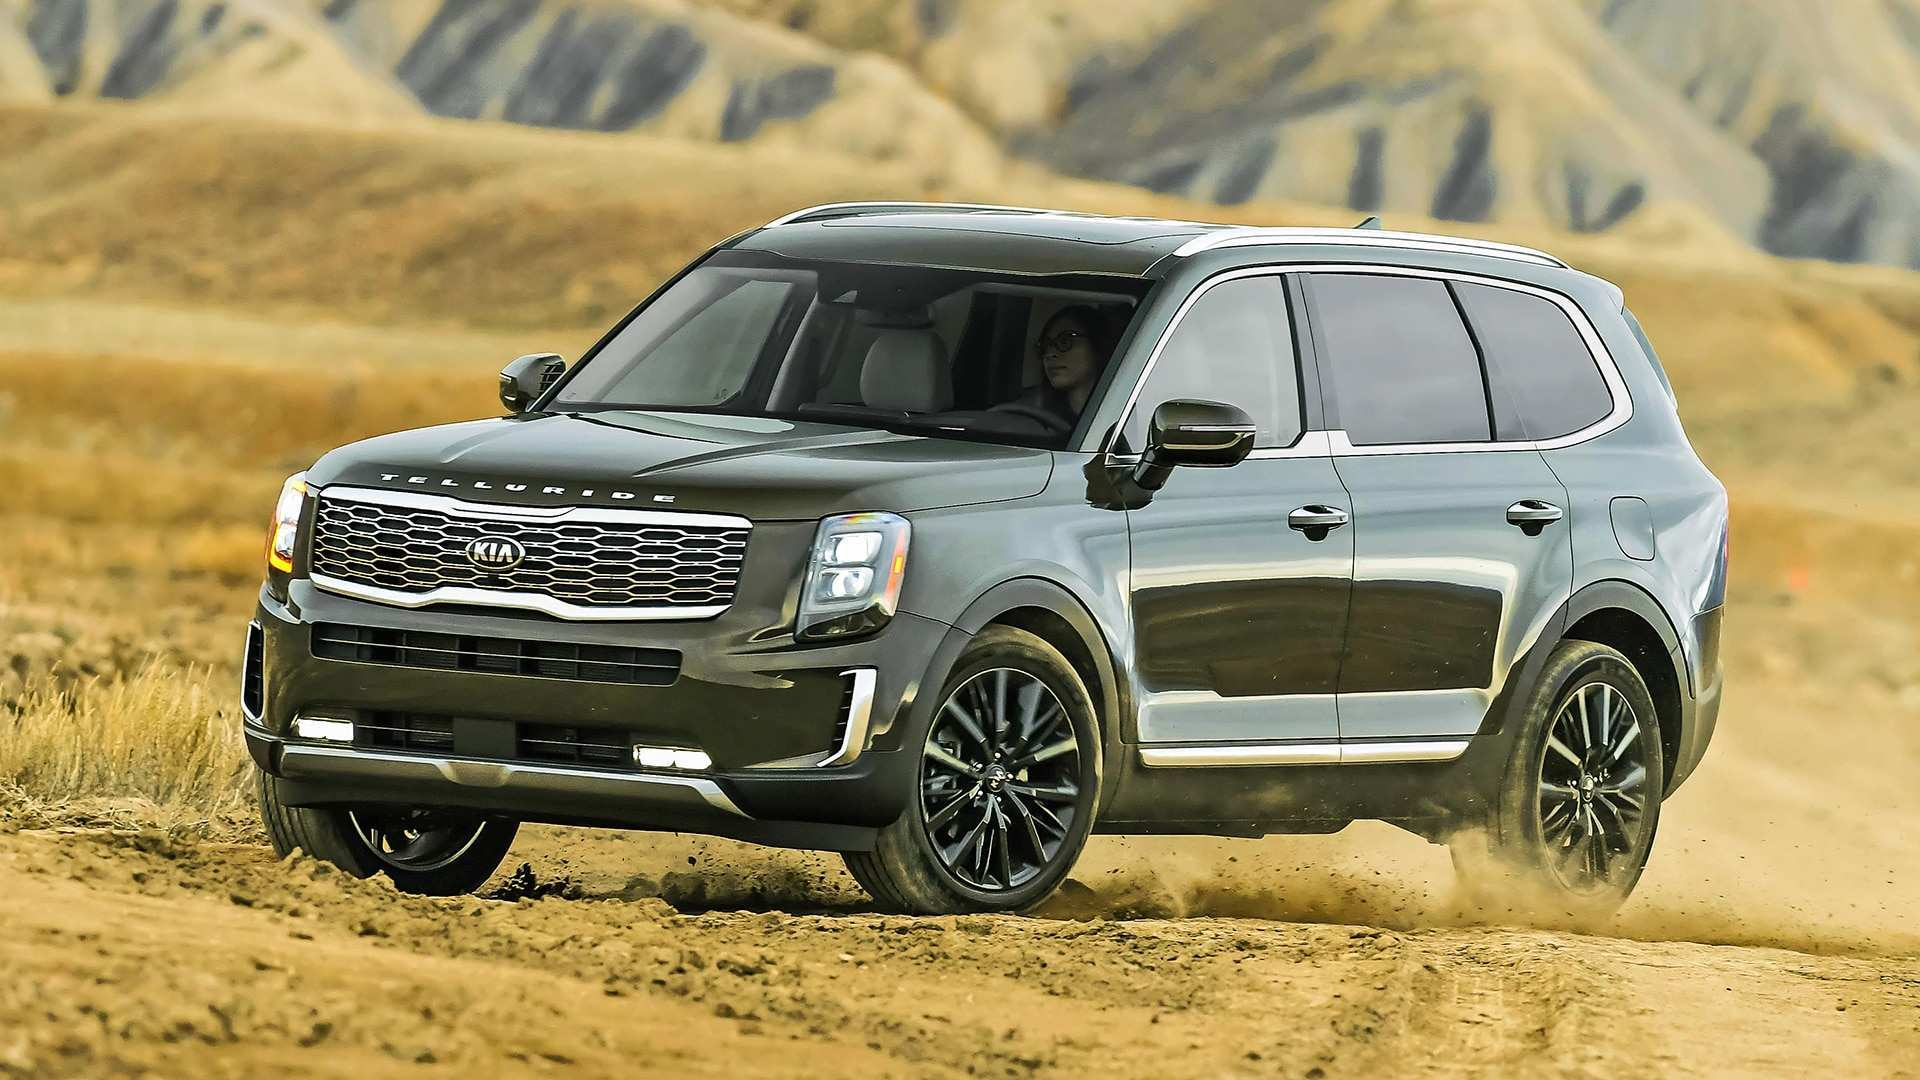 78 All New Kia Telluride 2020 Review New Concept